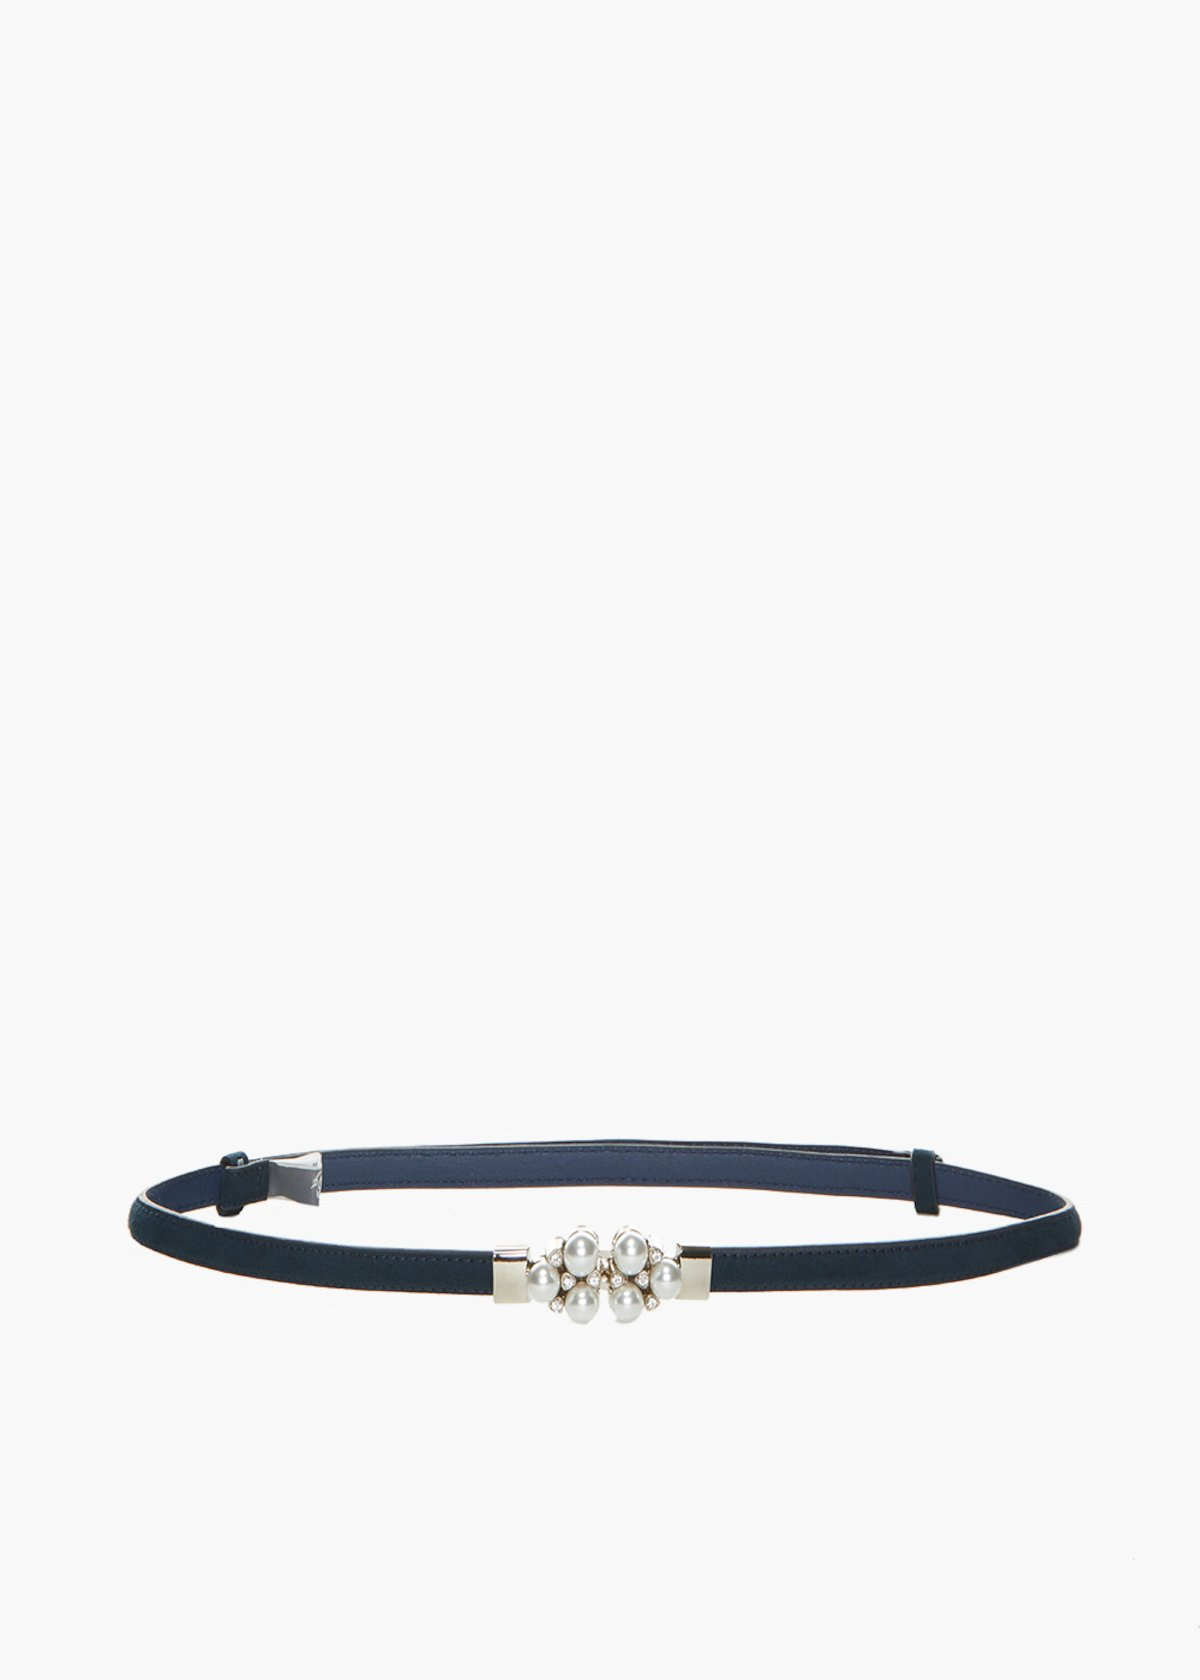 Faux suede Craia belt with pearls and crystal detail - Medium Blue - Woman